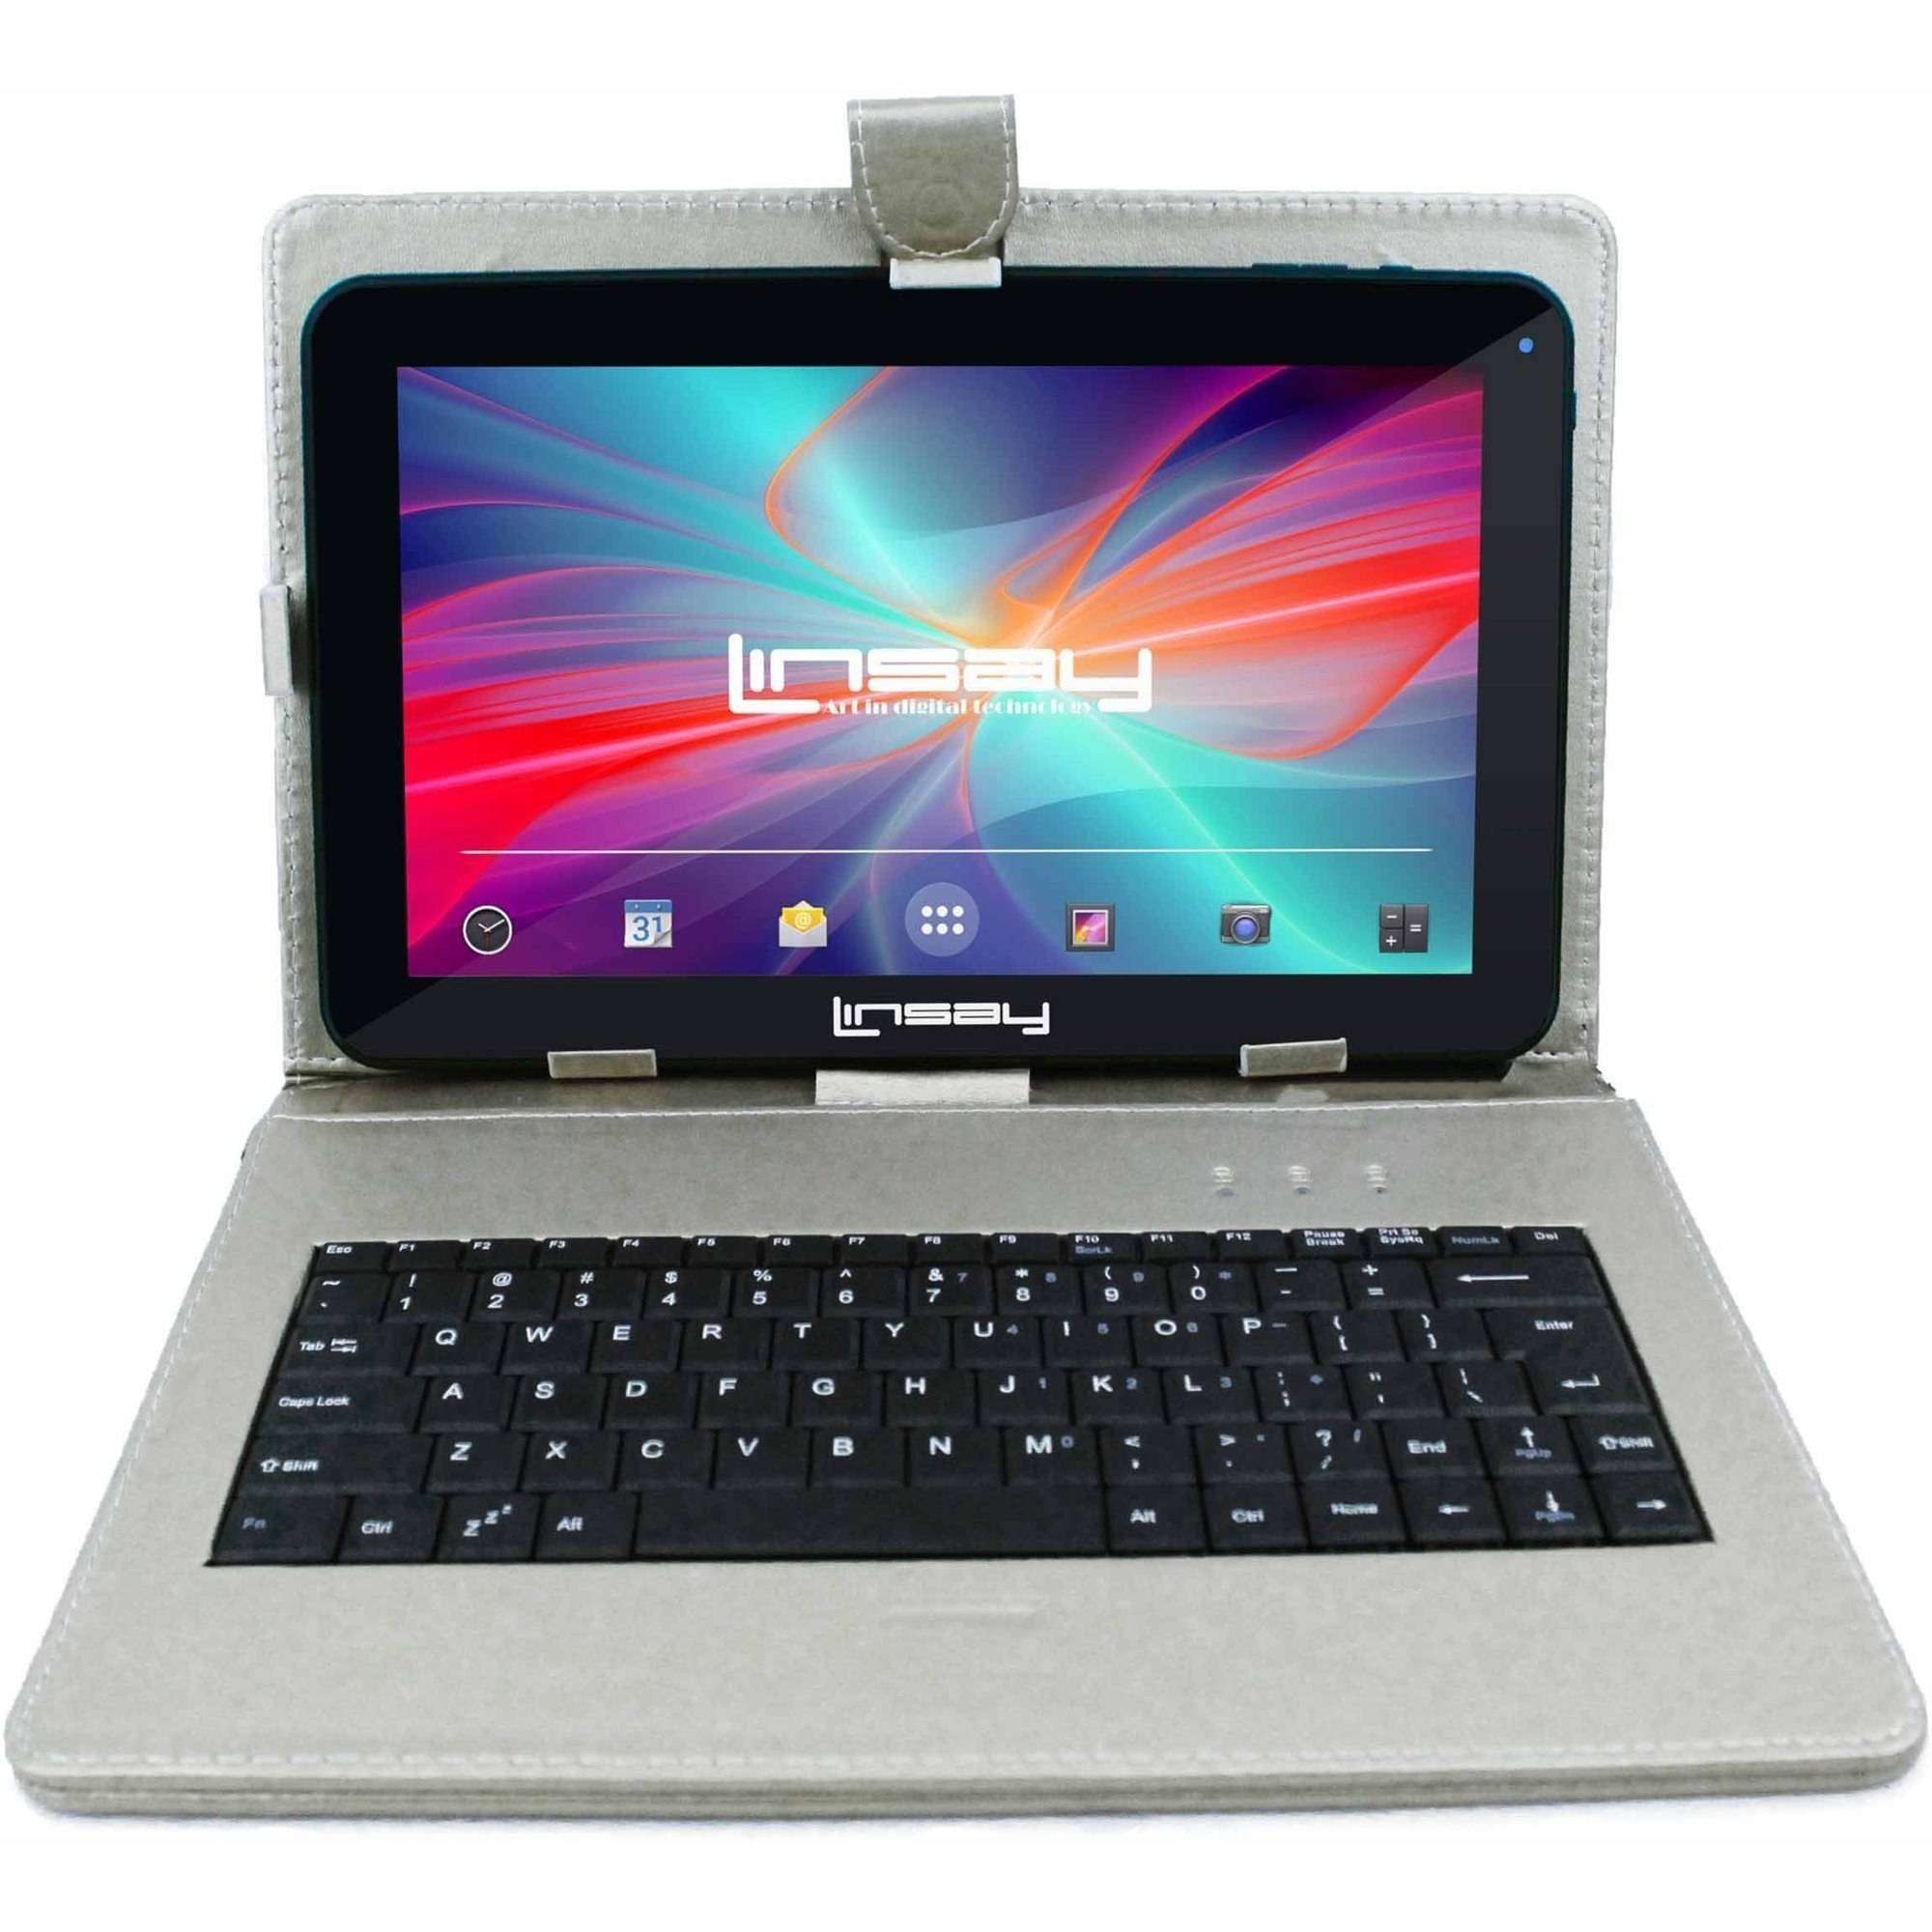 "LINSAY 10.1"" Touchscreen Quad Core Tablet PC Featuring Android 4.4 (KitKat) Operating System Bundle with Silver Keyboard"